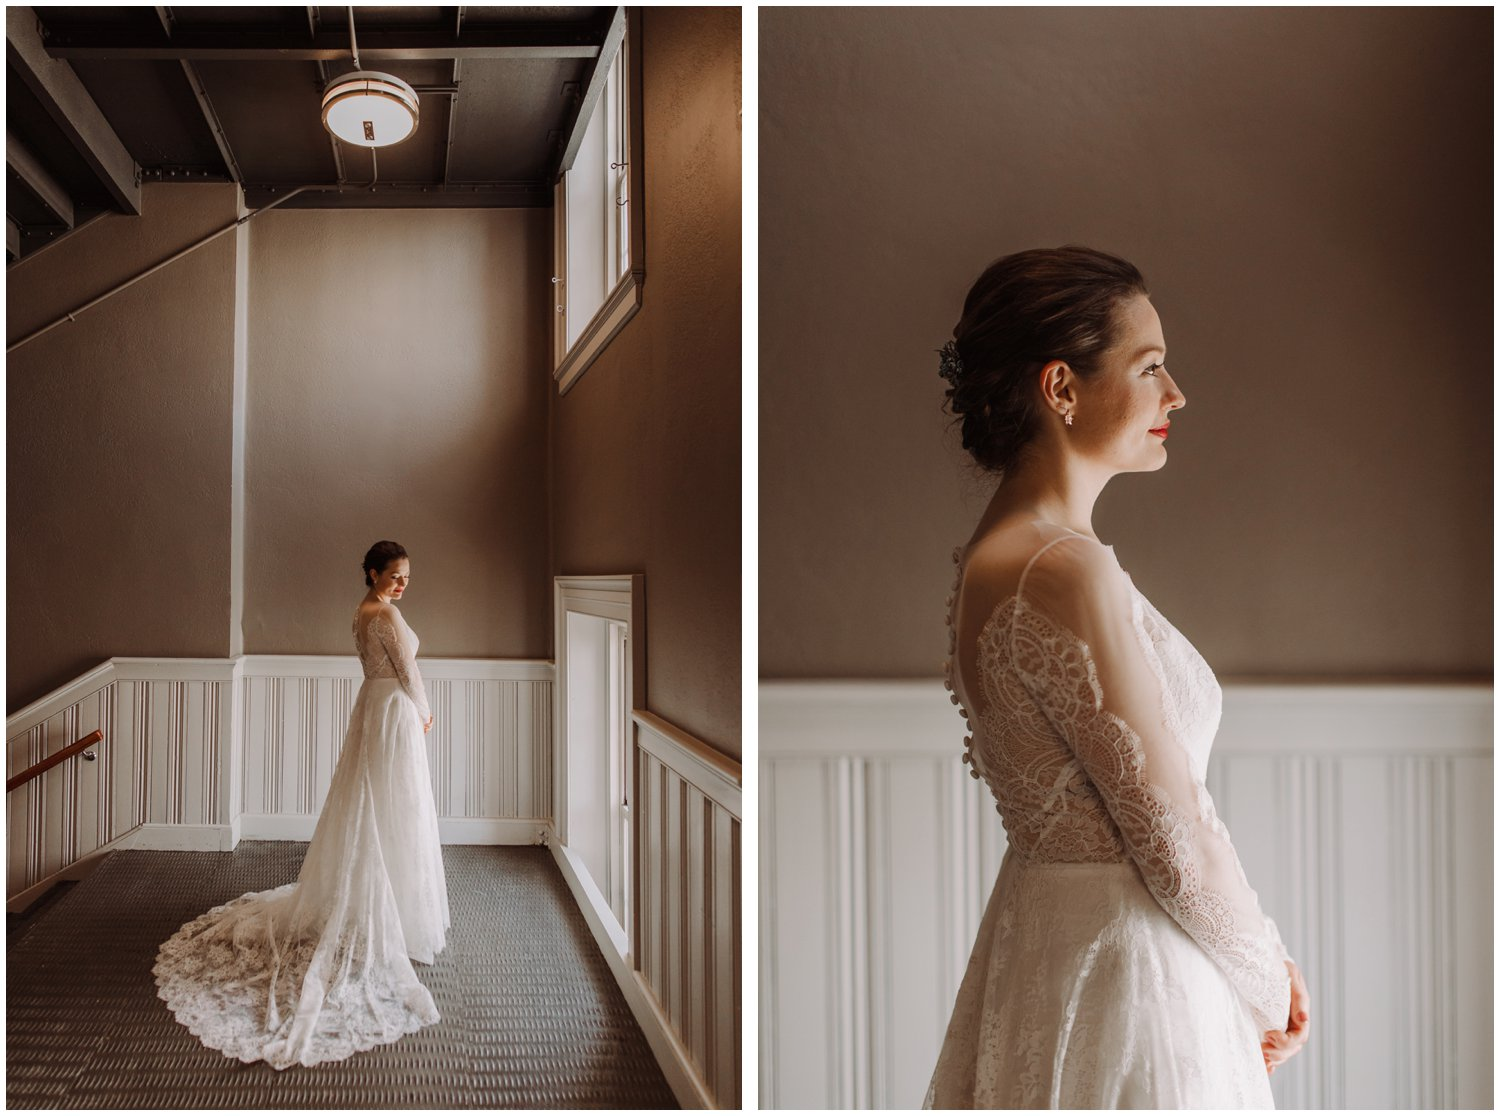 Baltimore center stage bridal portraits Baltimore wedding photographer